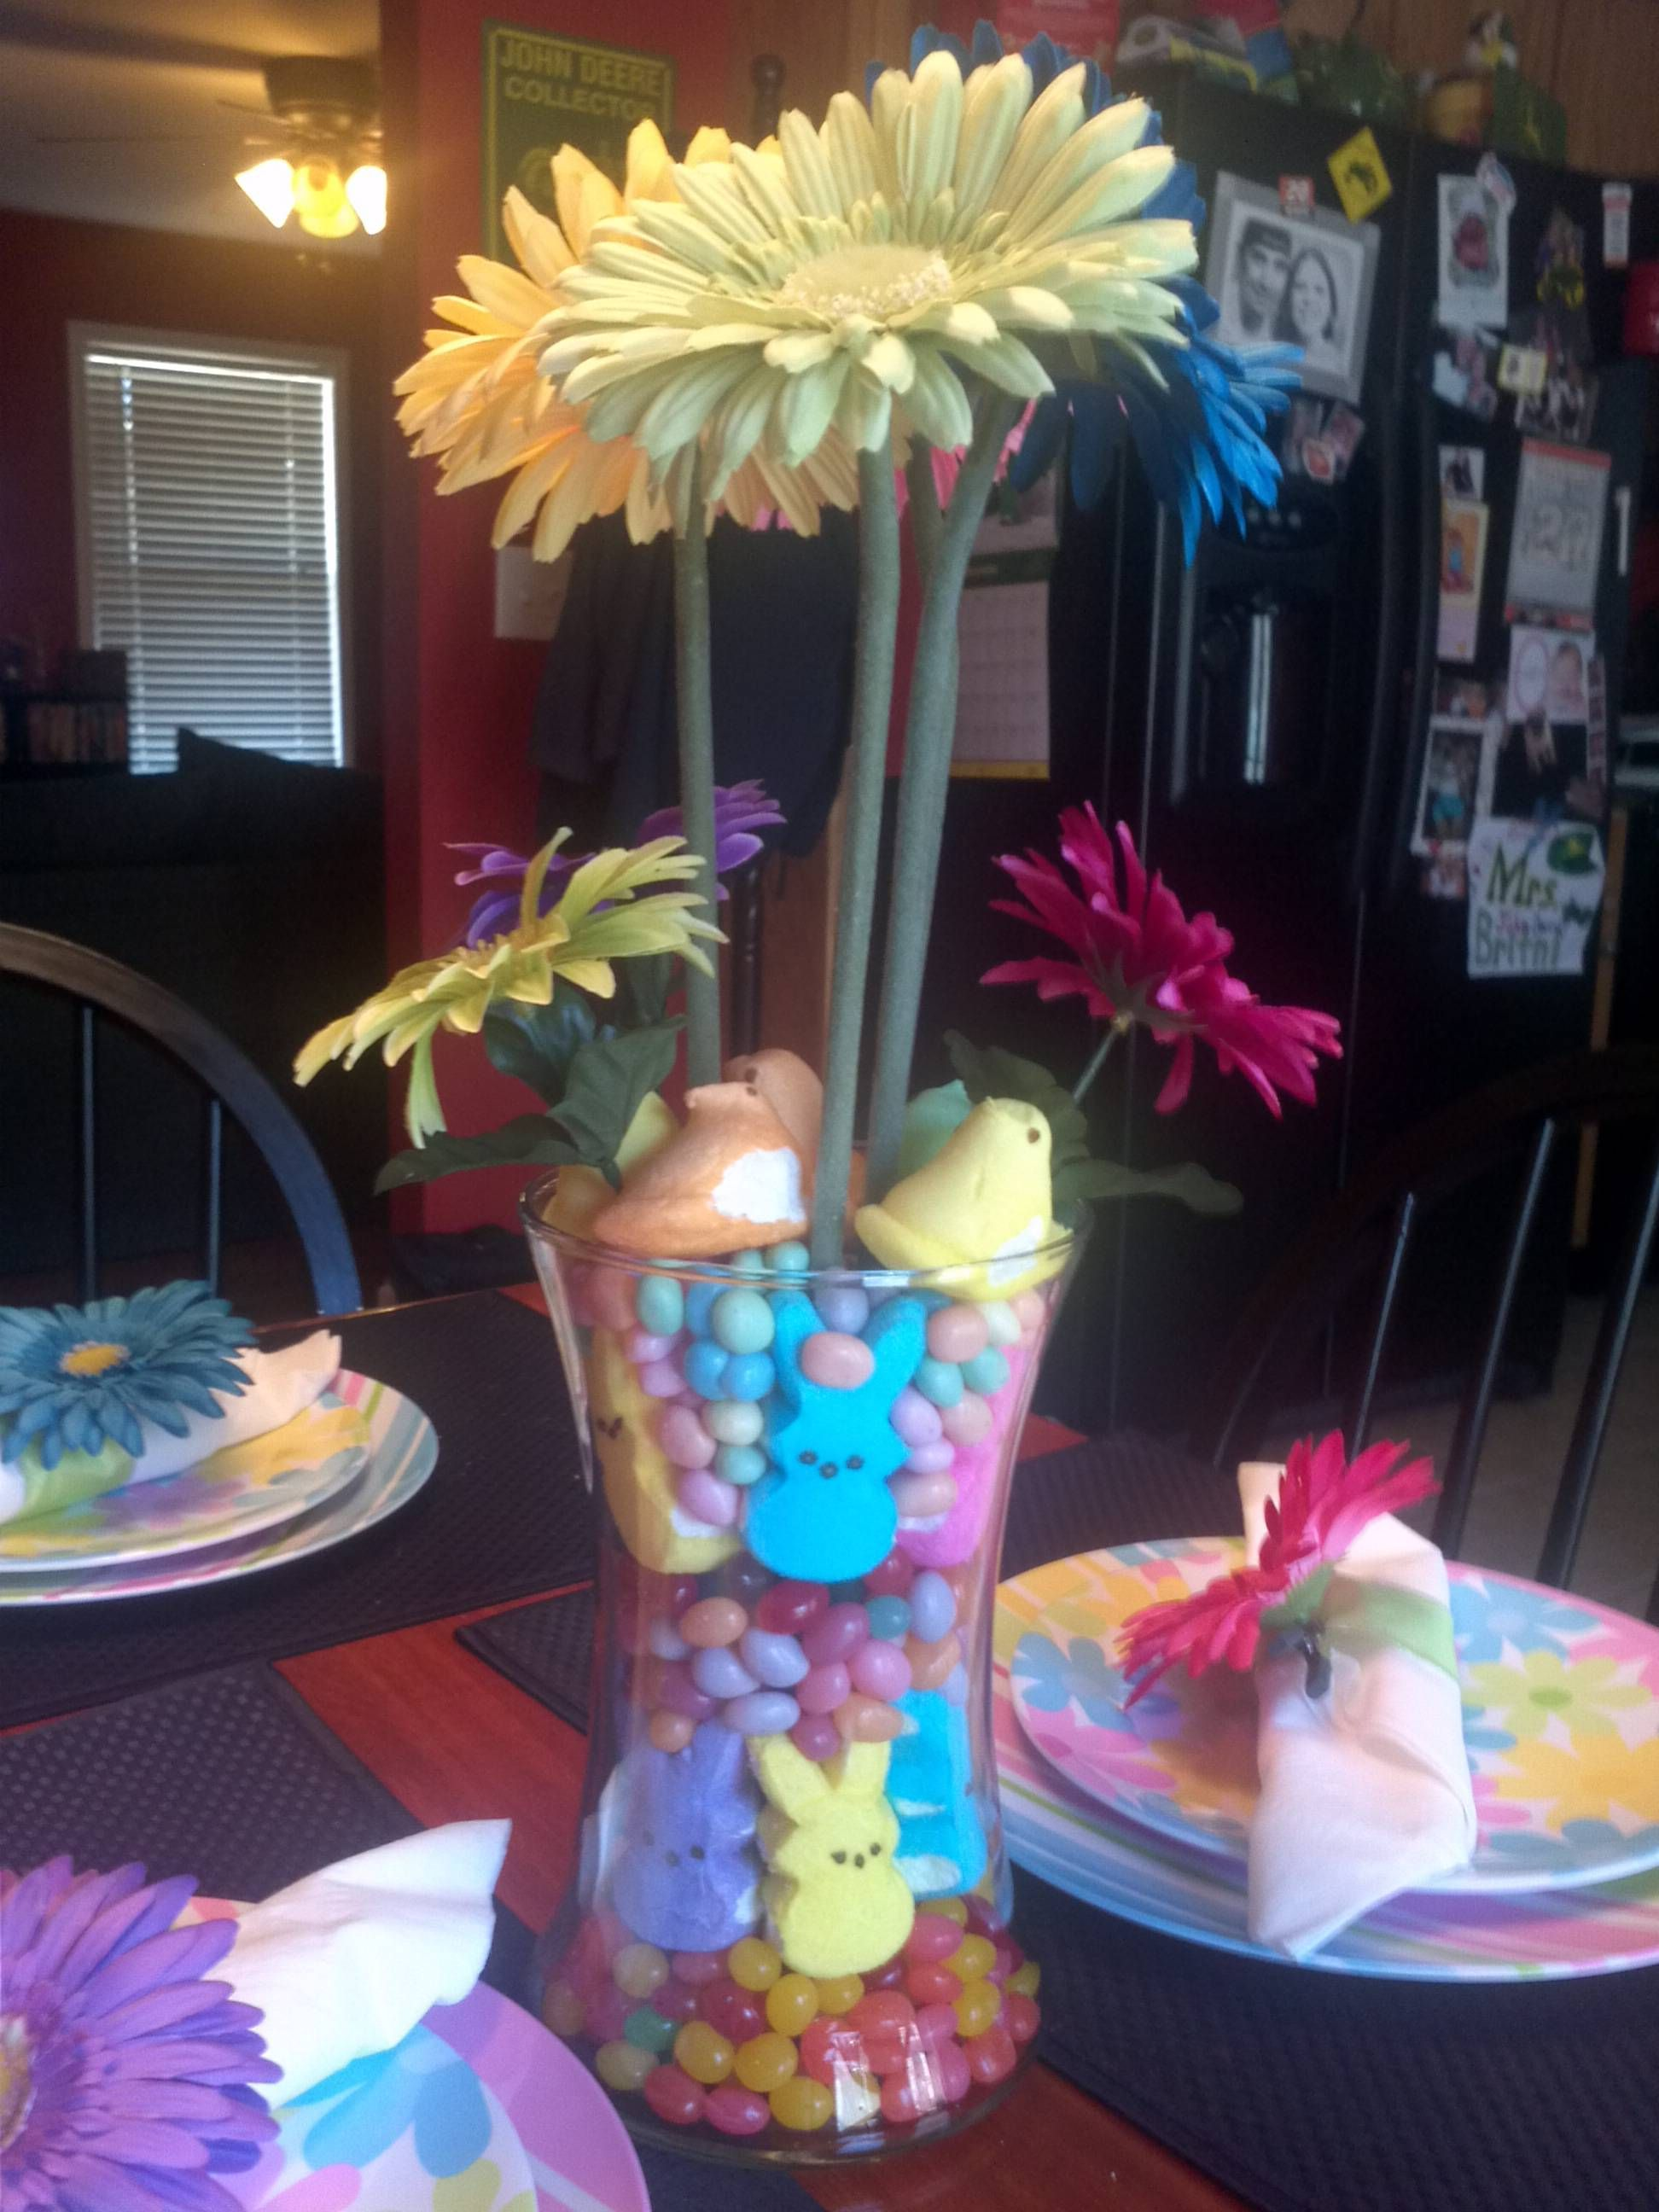 New spring center piece for my table using fake spring flowers new spring center piece for my table using fake spring flowers peeps and jelly mightylinksfo